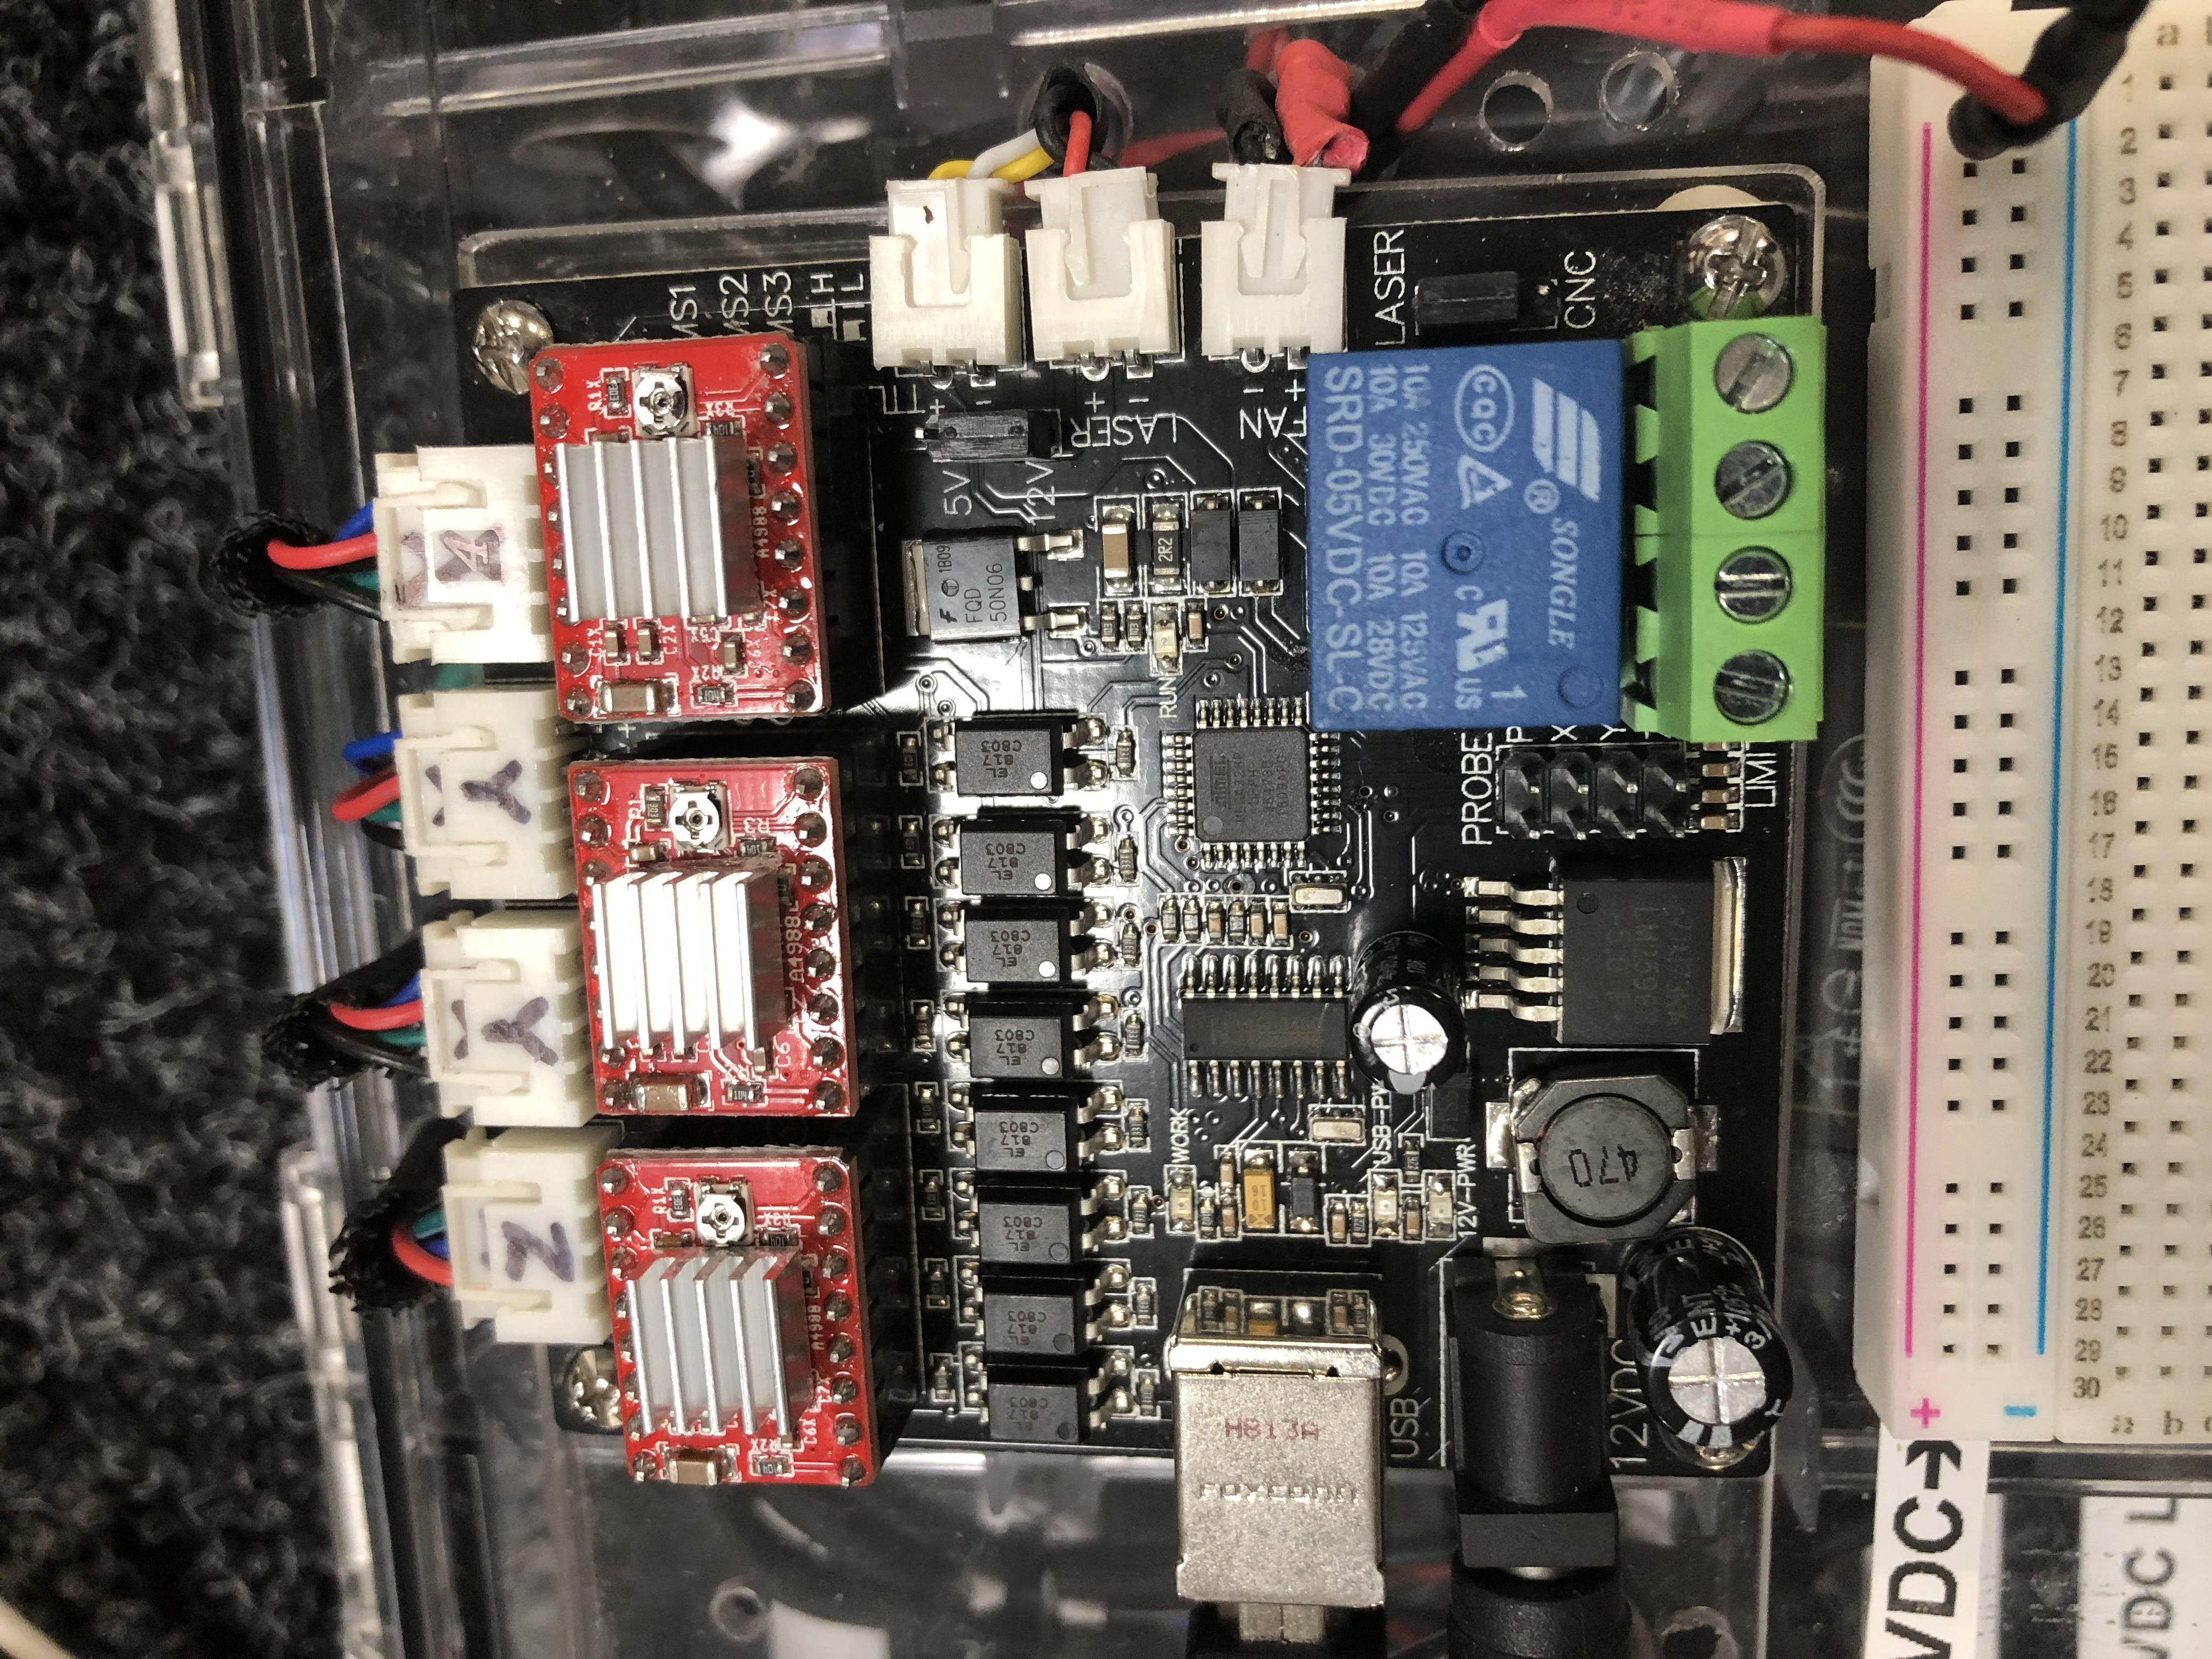 Bigtreetech cnc controller · Issue #545 · arkypita/LaserGRBL